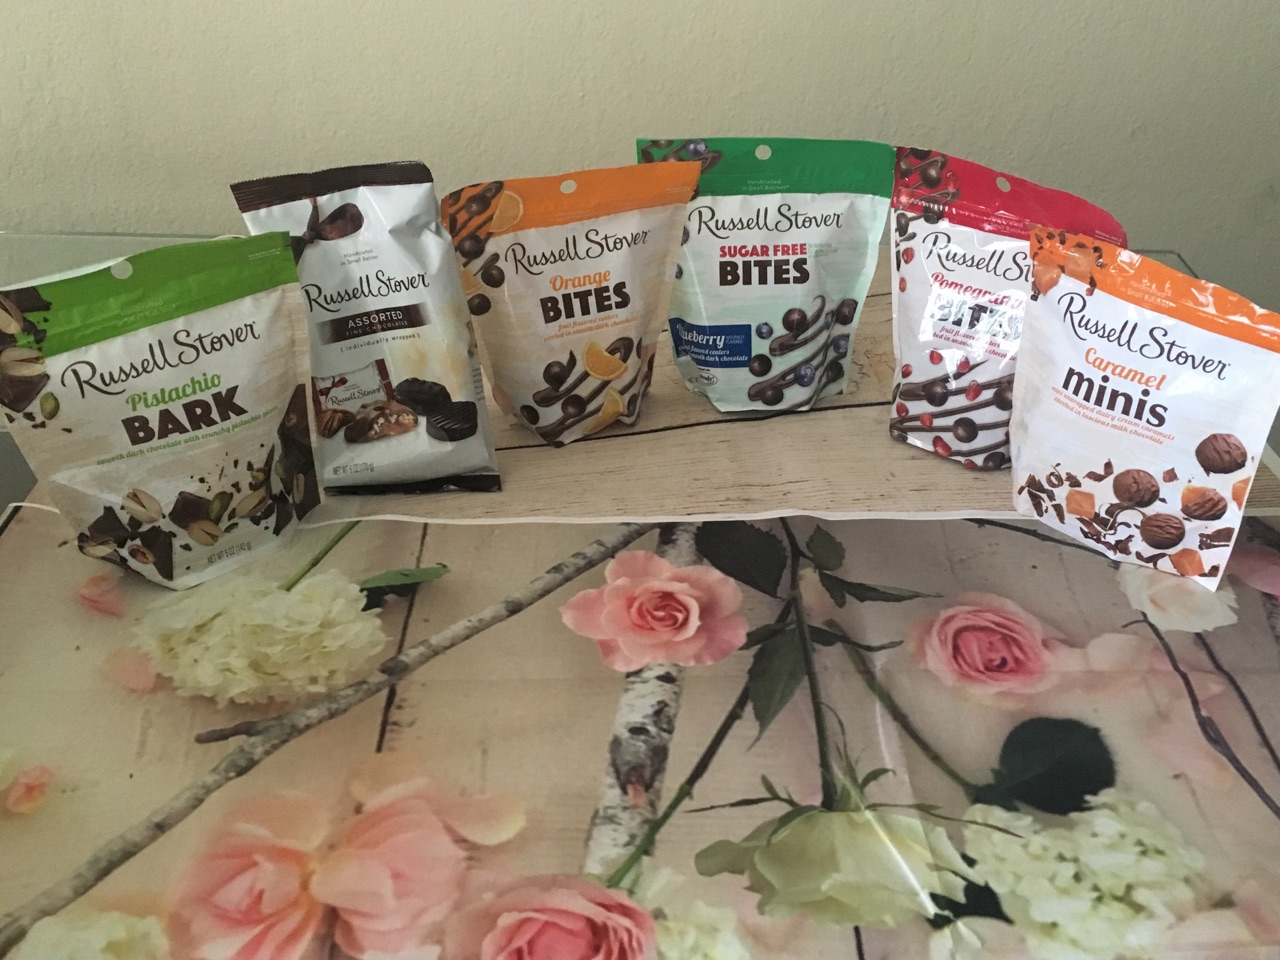 New Russell Stover Chocolate Line, can you say MMM, MMM Good ...